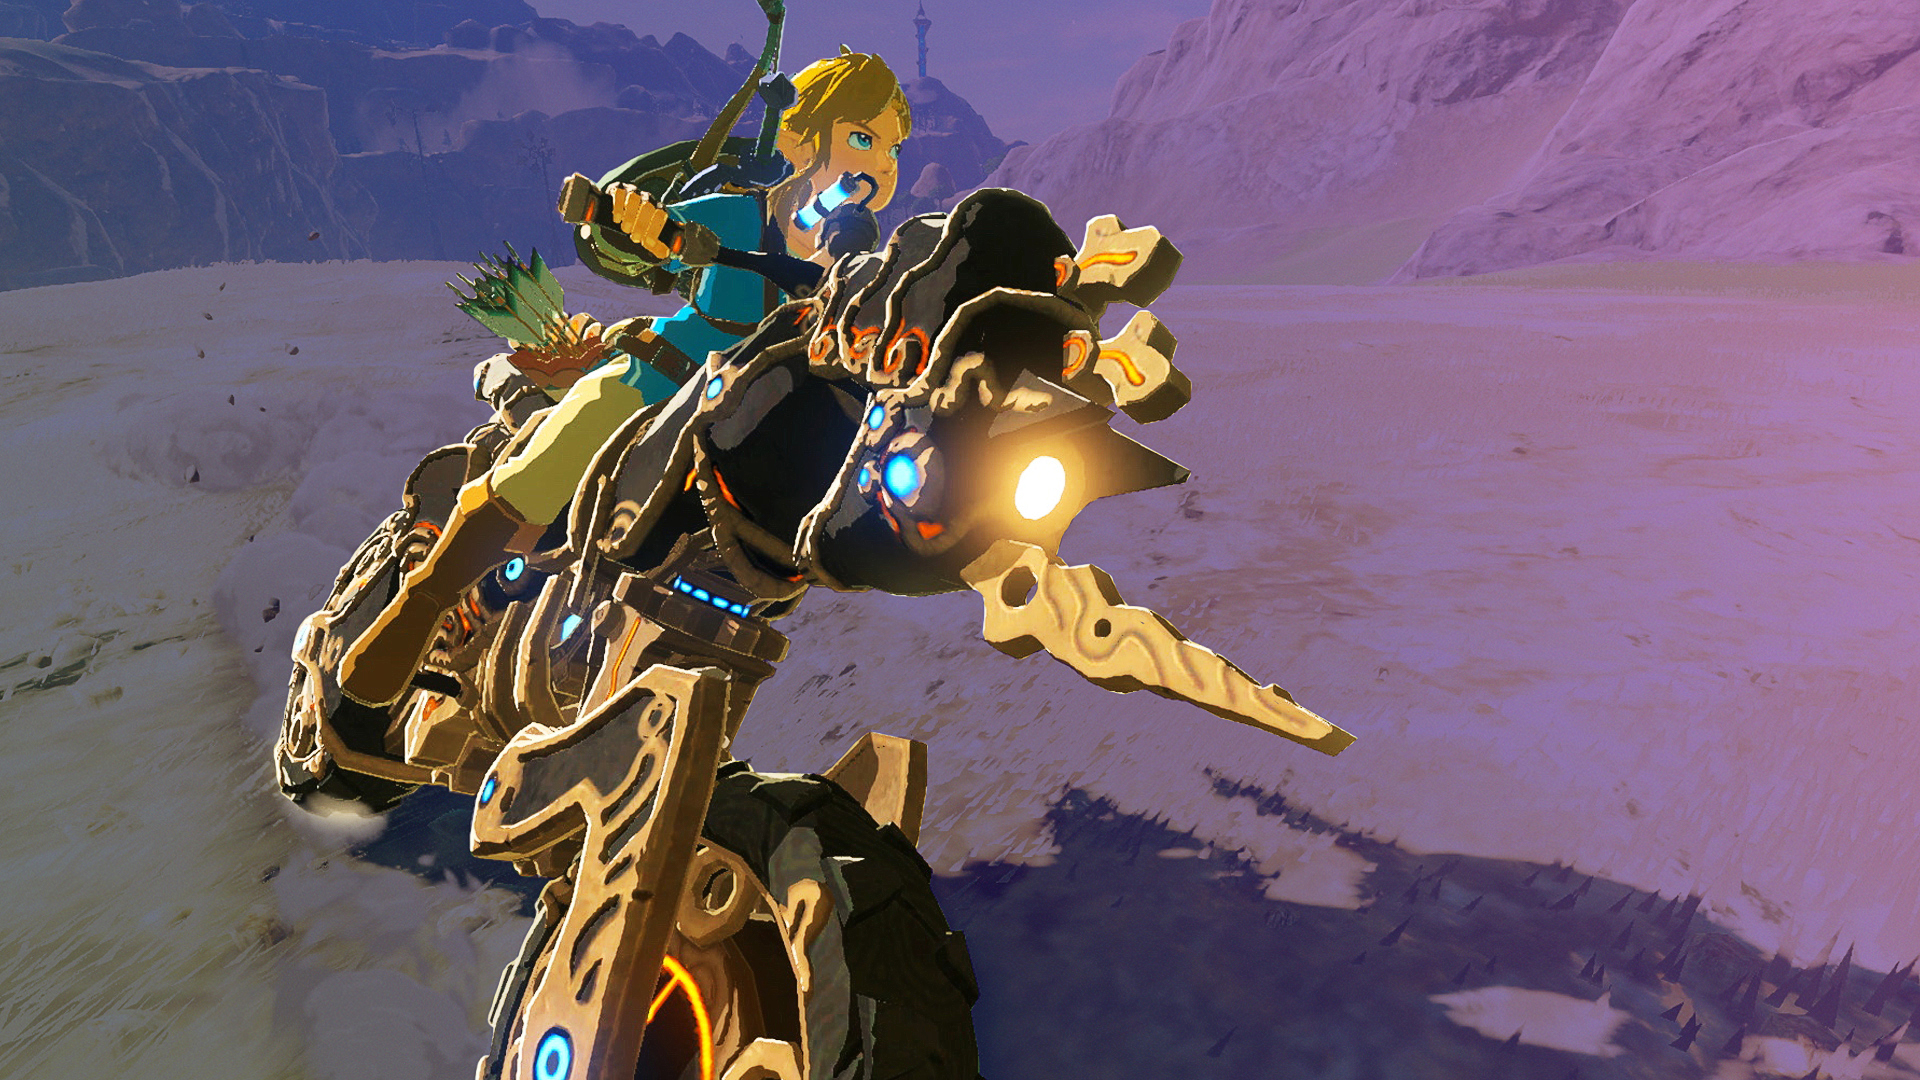 Link riding his motorbike in the Nintendo Game The Legend of Zelda: Breath of the Wild